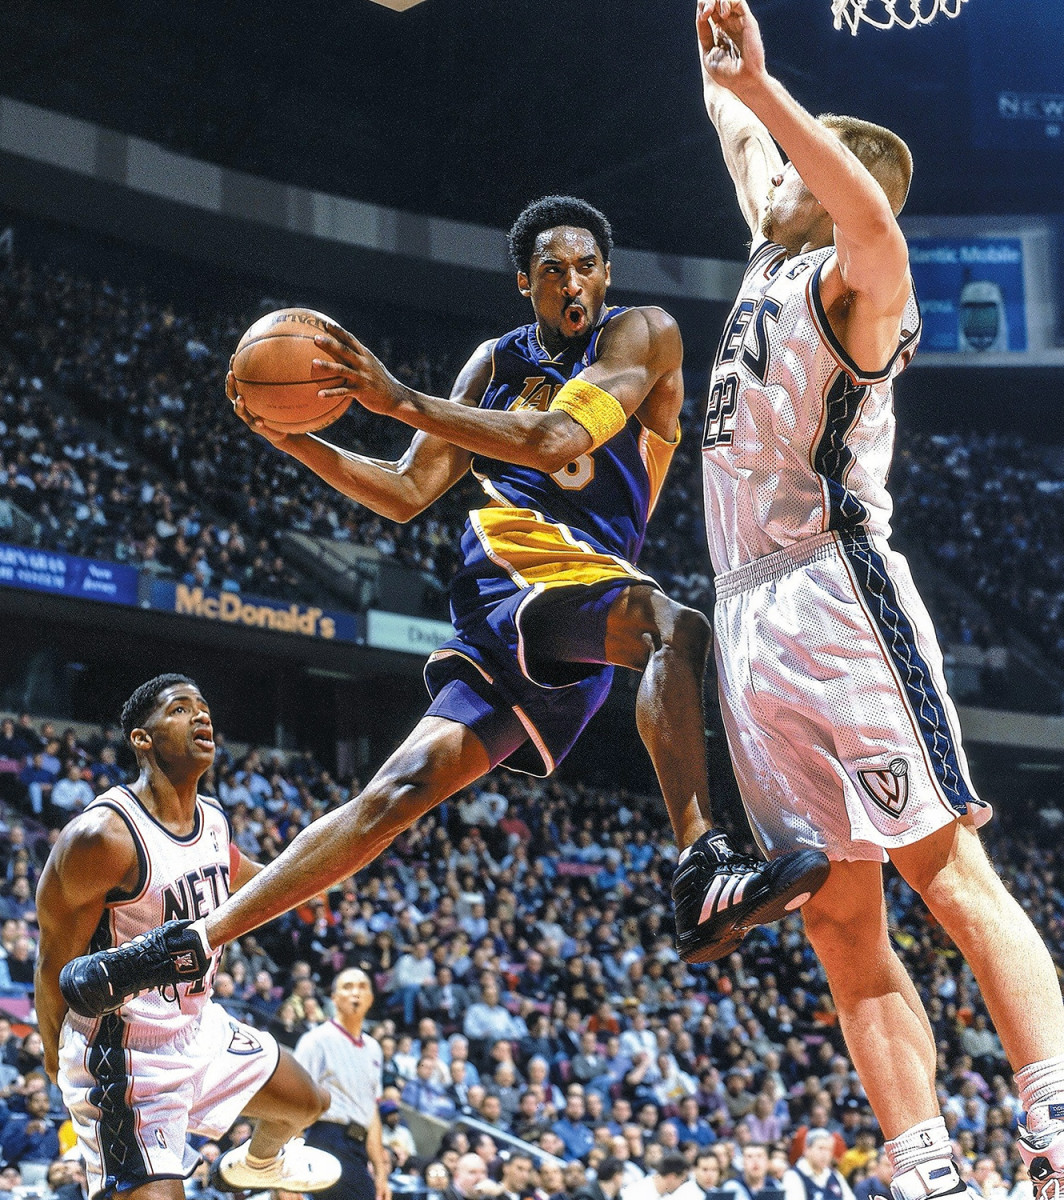 Kobe—newly engaged, newly fired up—exploded in 1999-2000.